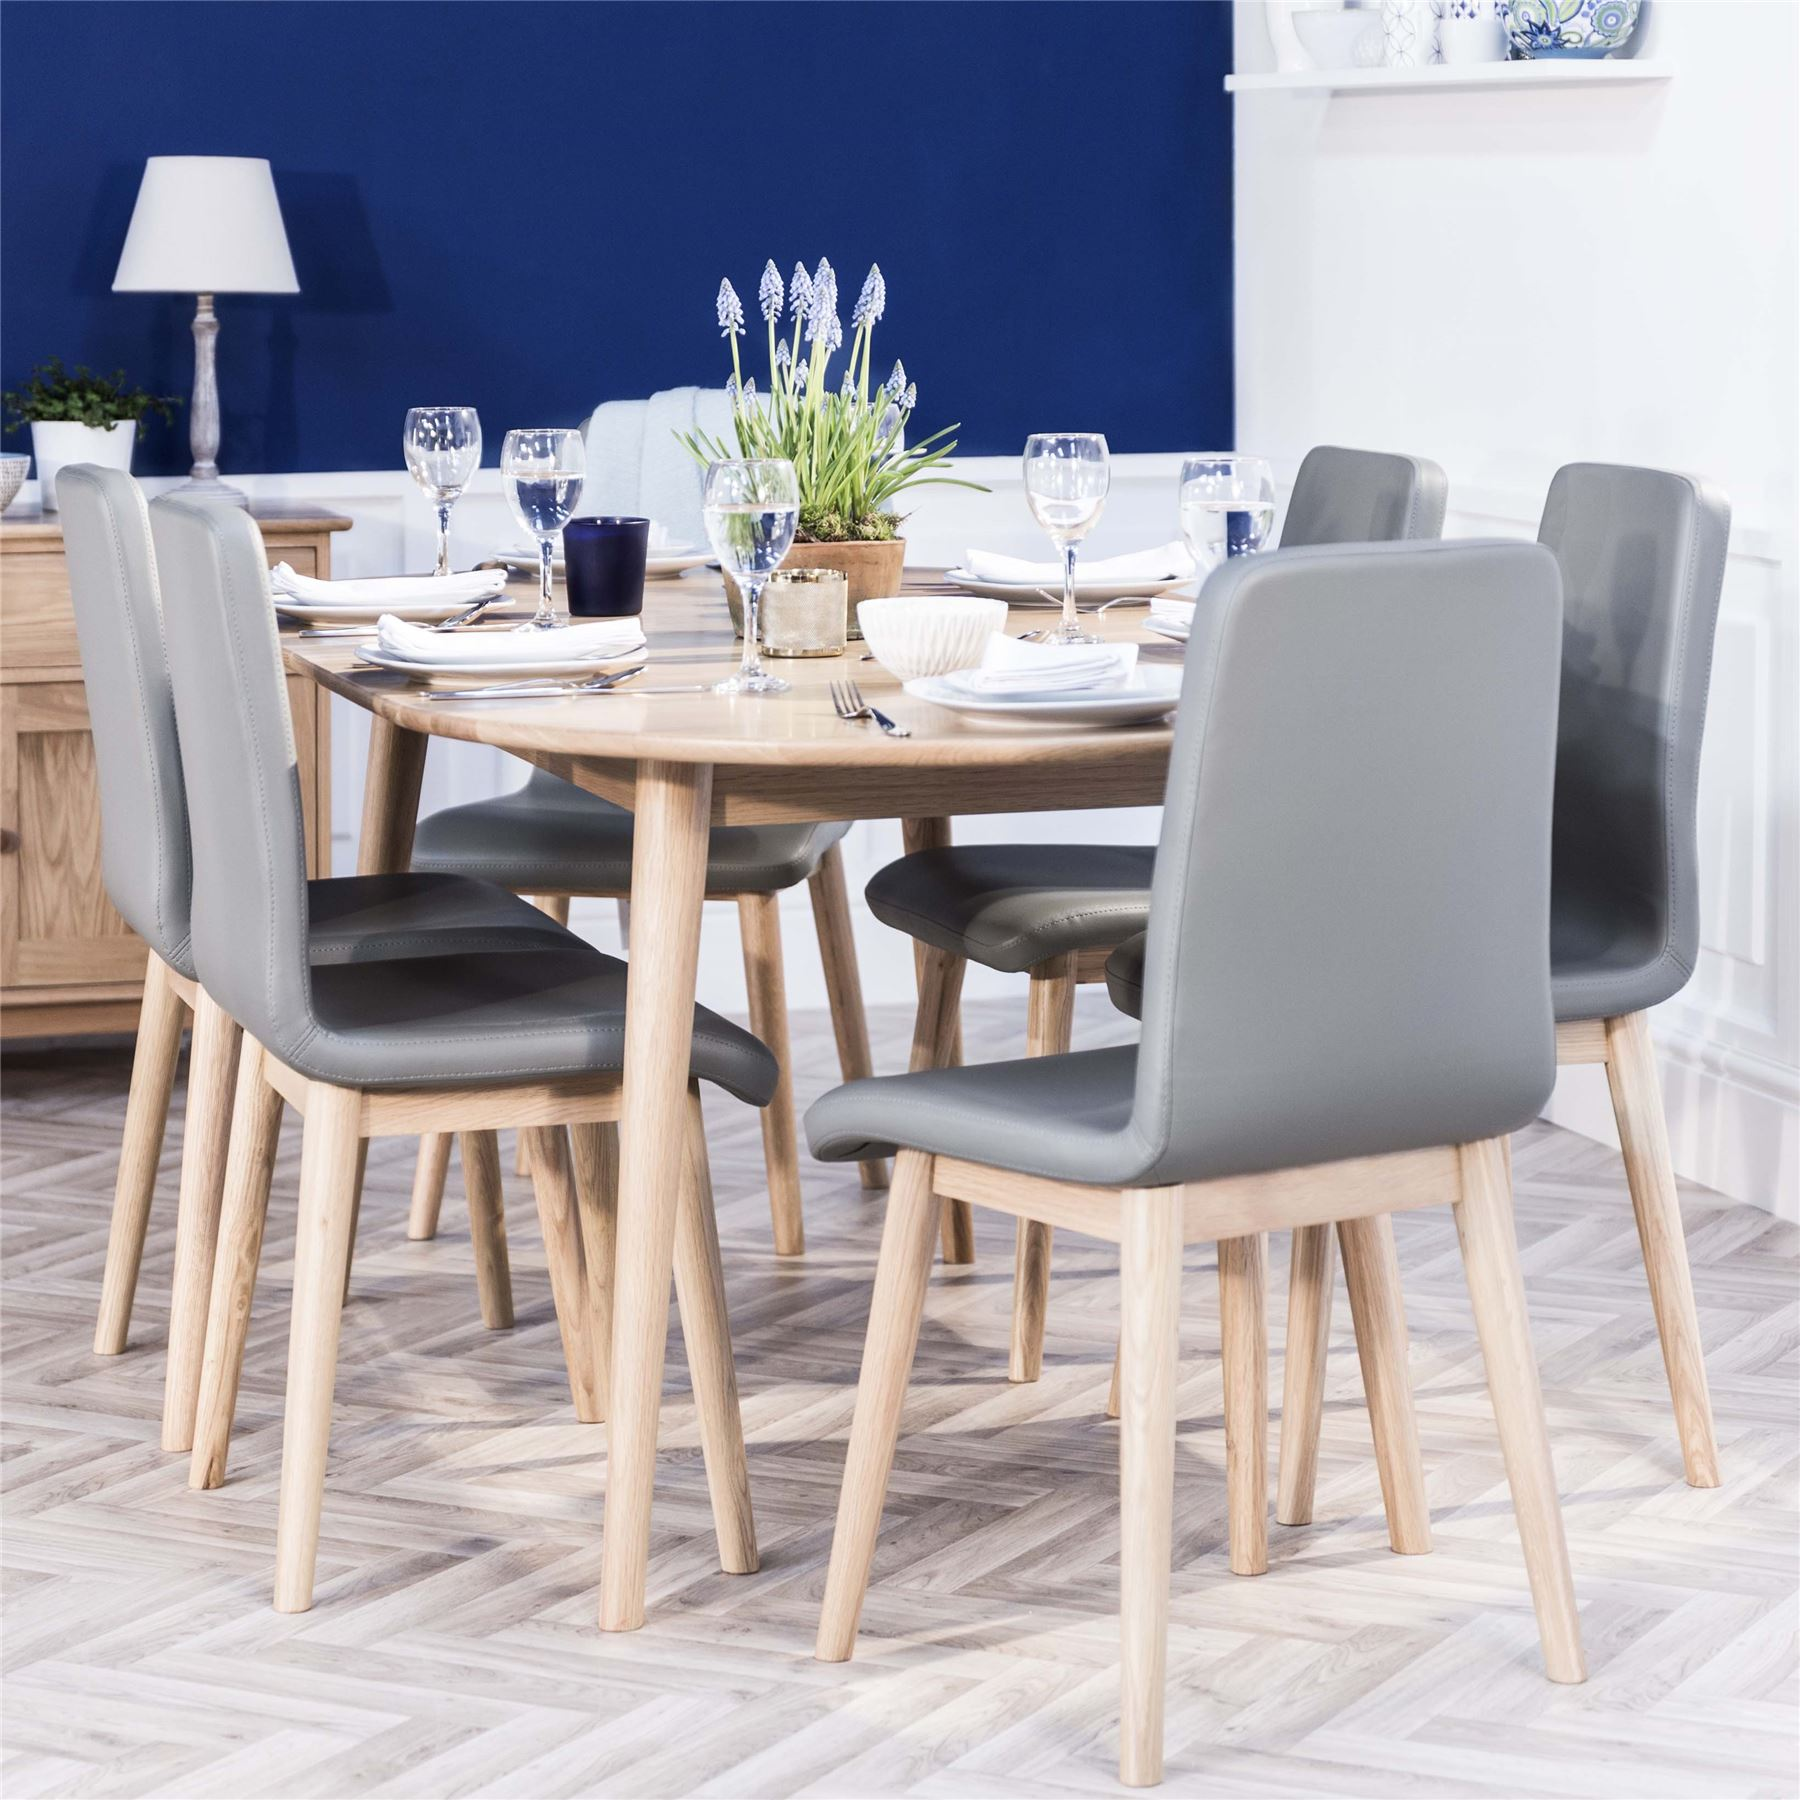 style home in design oak interior table new dining gallery custom kitchen